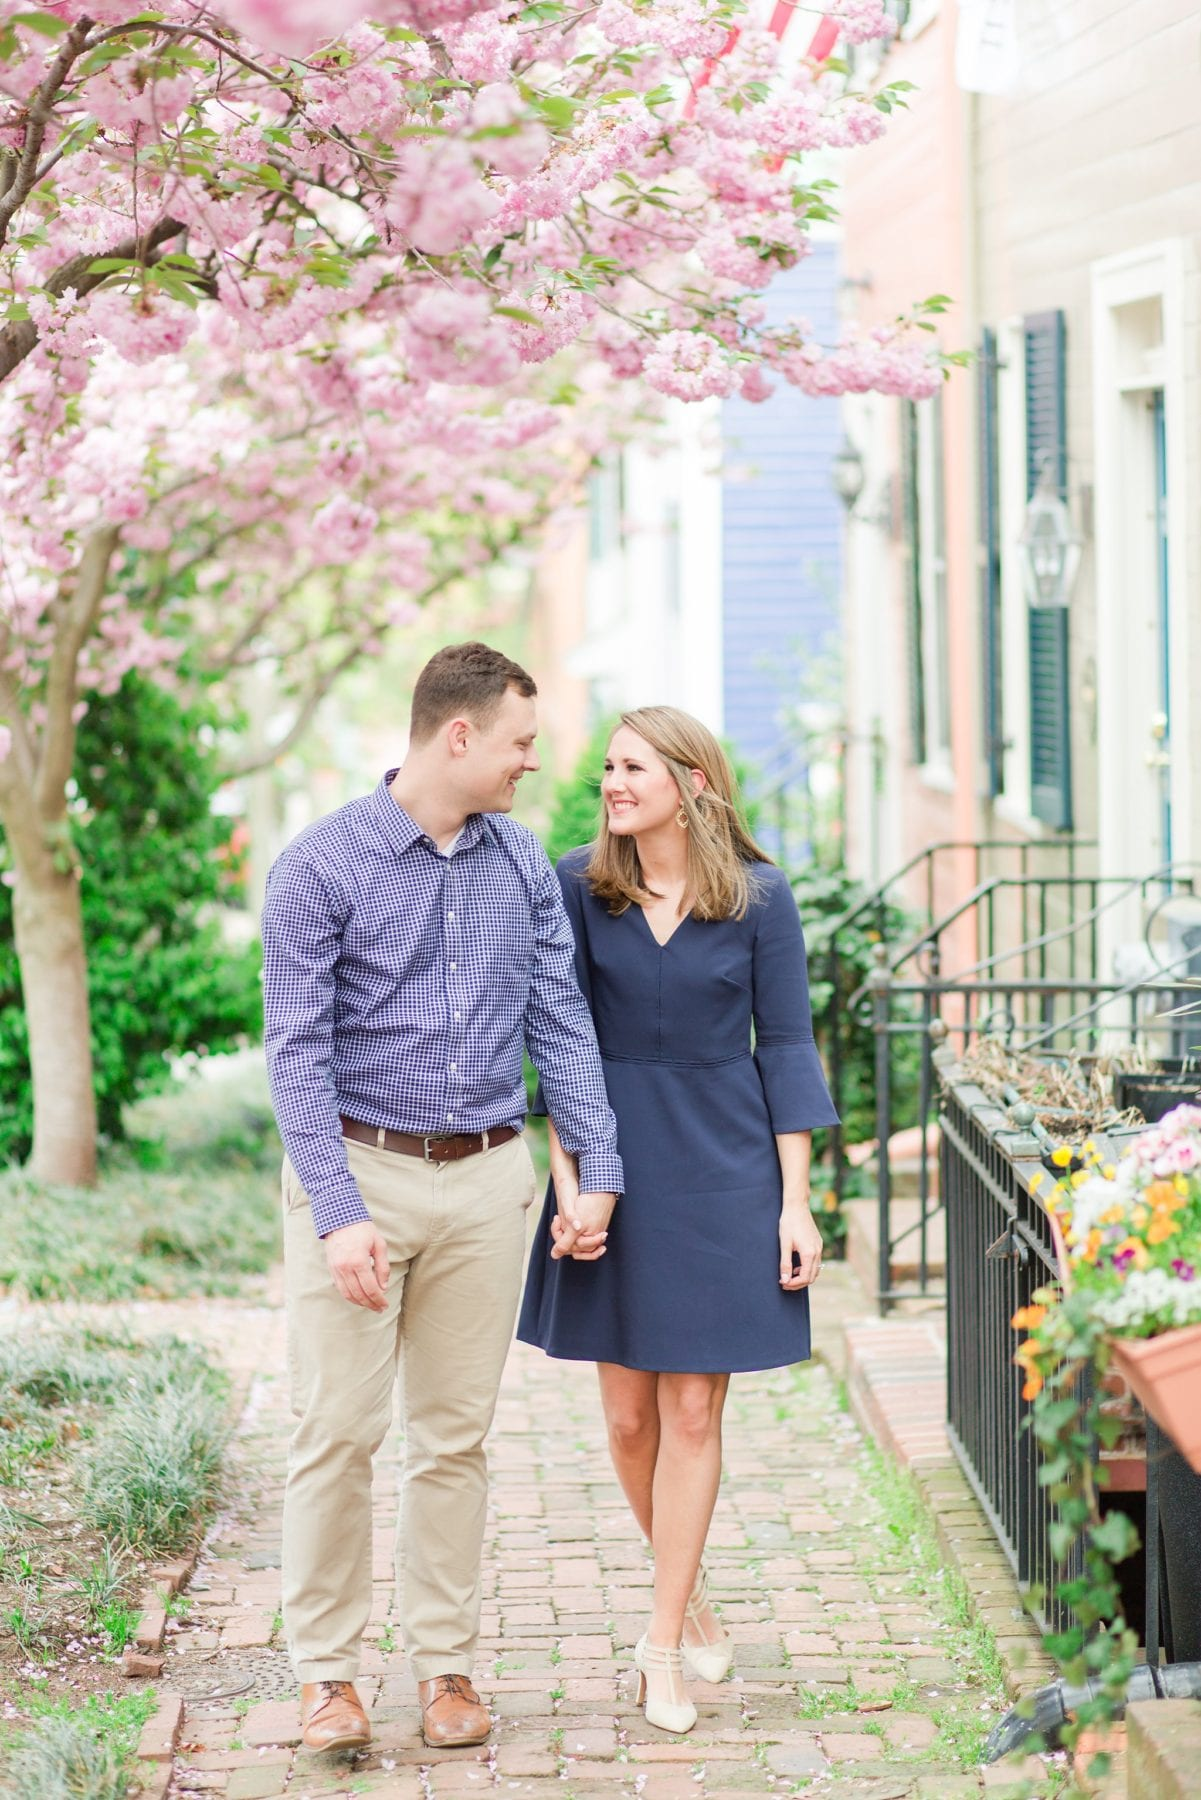 Springtime Old Town Alexandria Engagement Session Matt & Maxie Megan Kelsey Photography-57.jpg